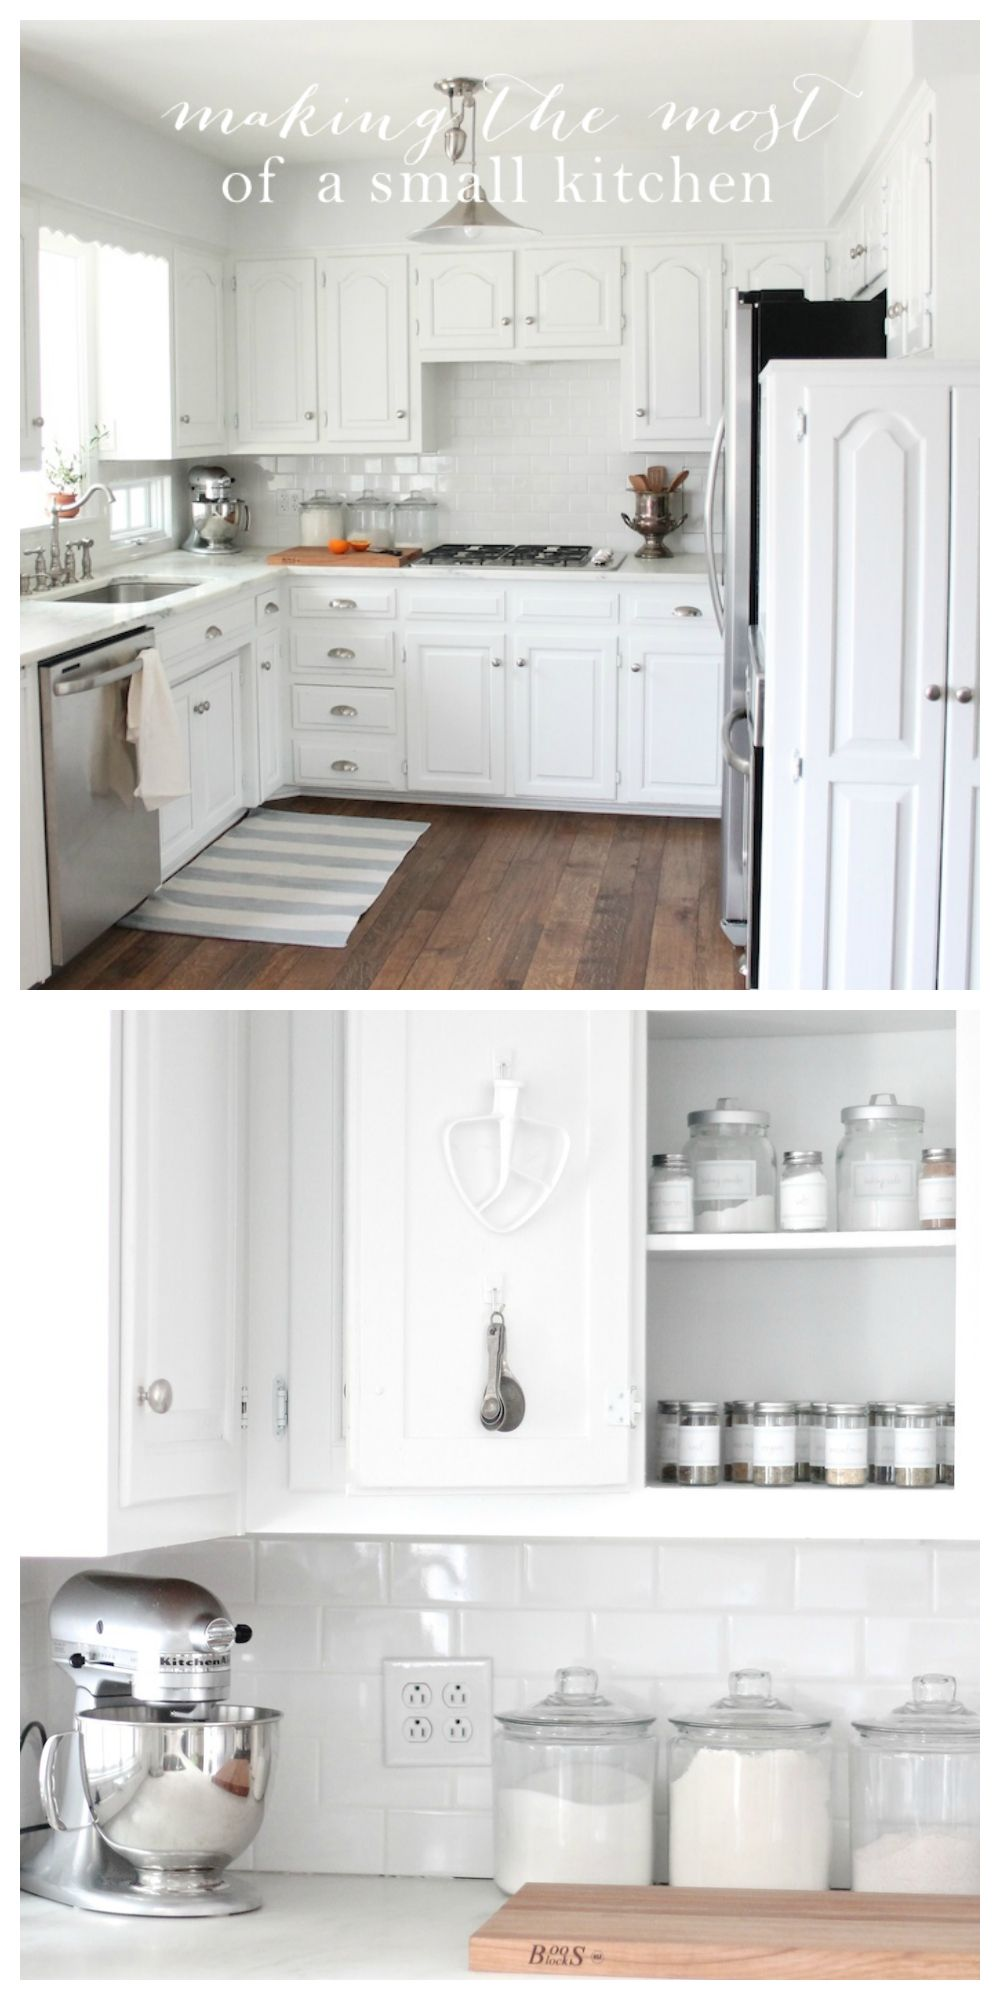 Making the most of a small kitchen - creative ideas to organize your ...